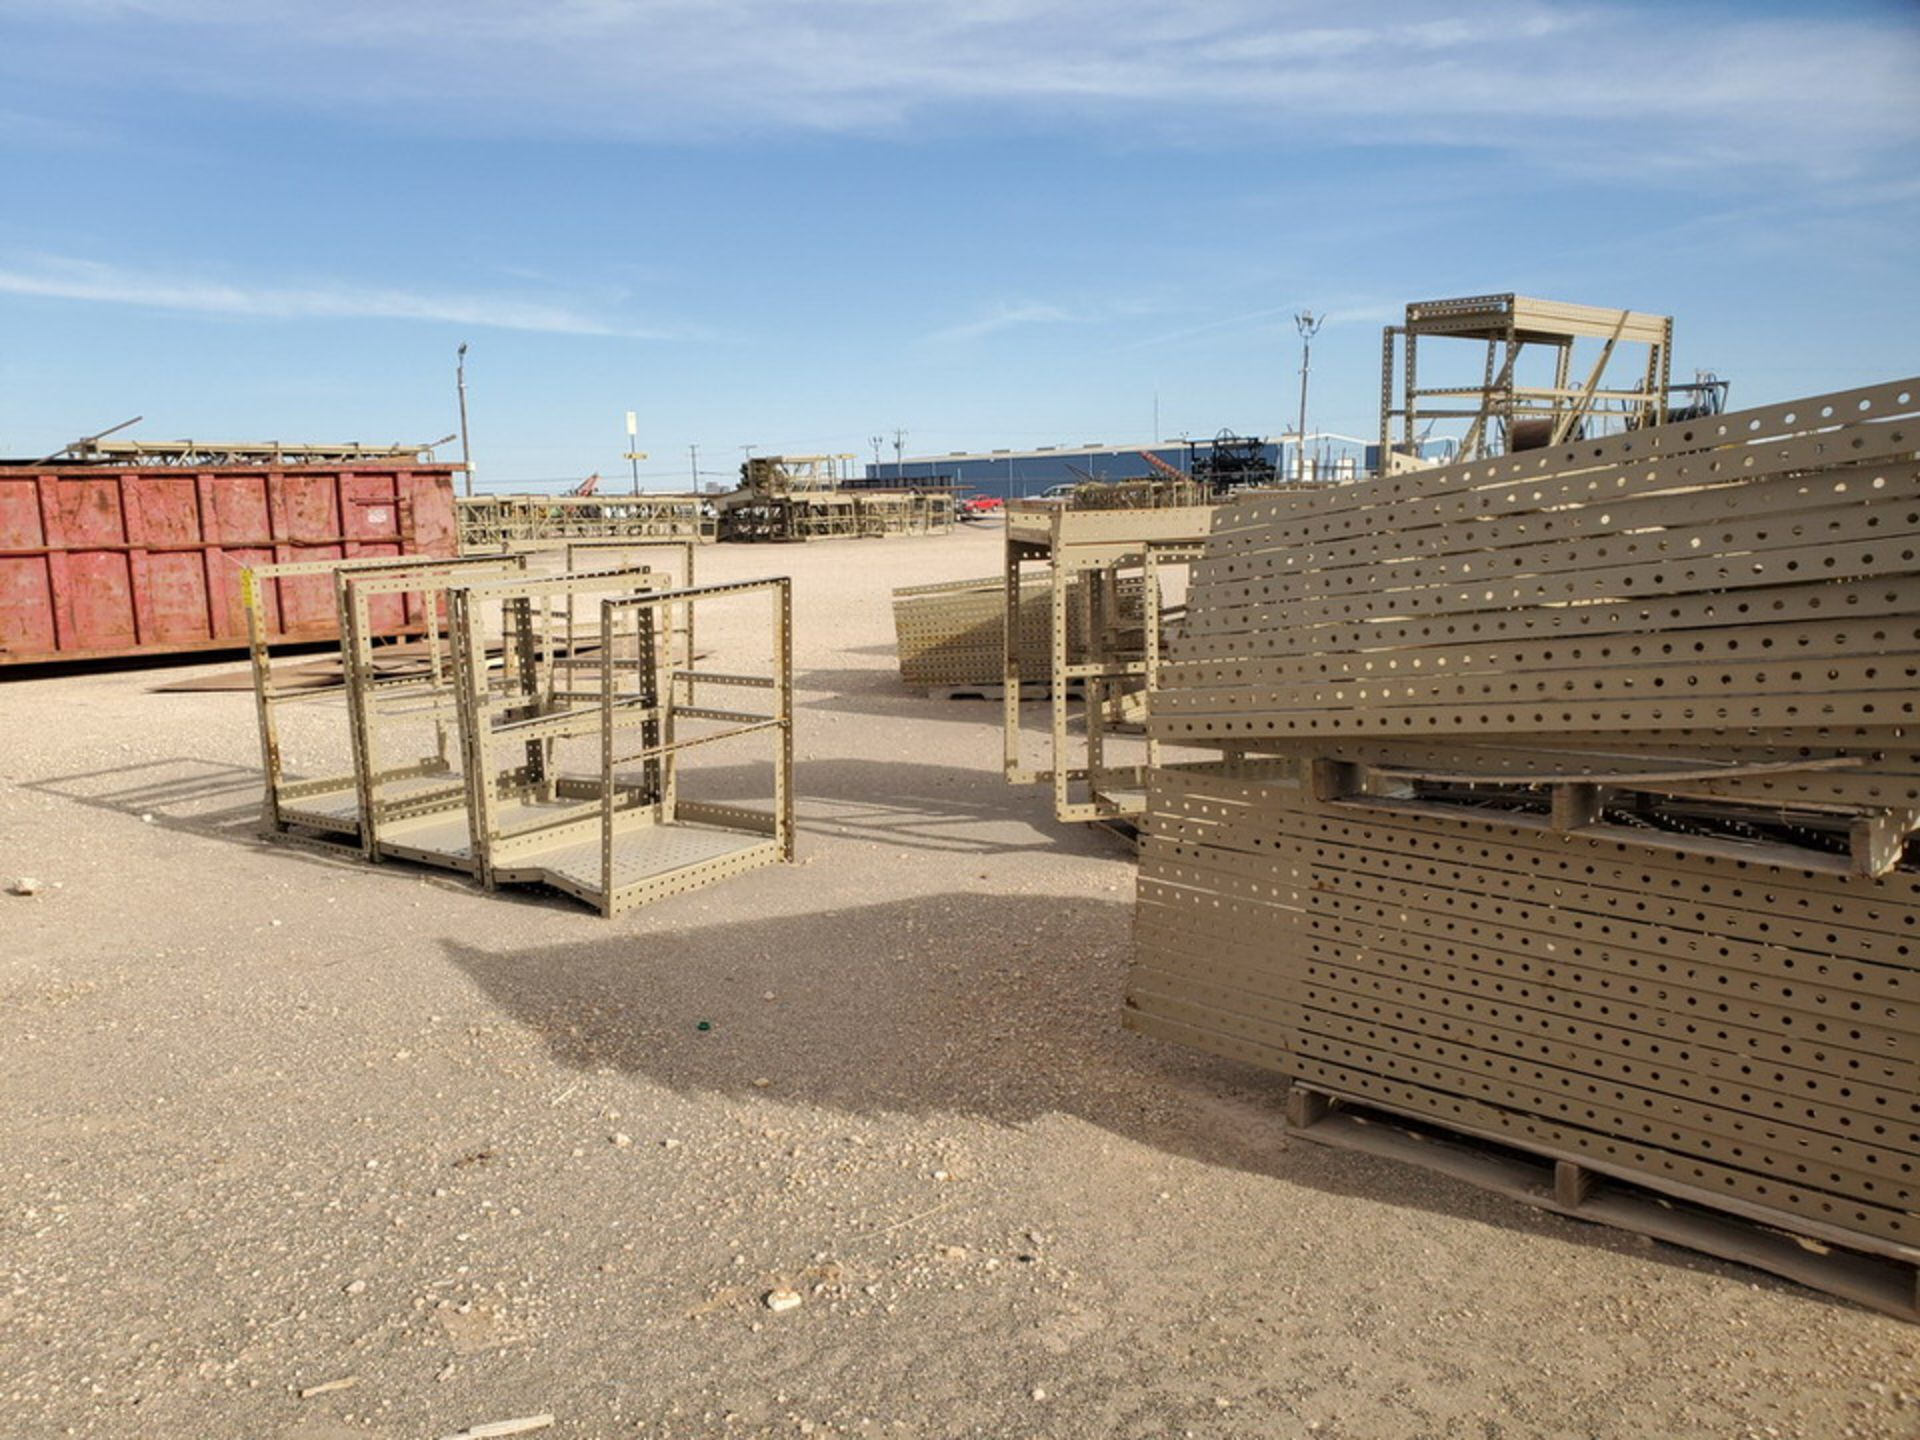 Disassembled Catwalk Sections - Image 15 of 20